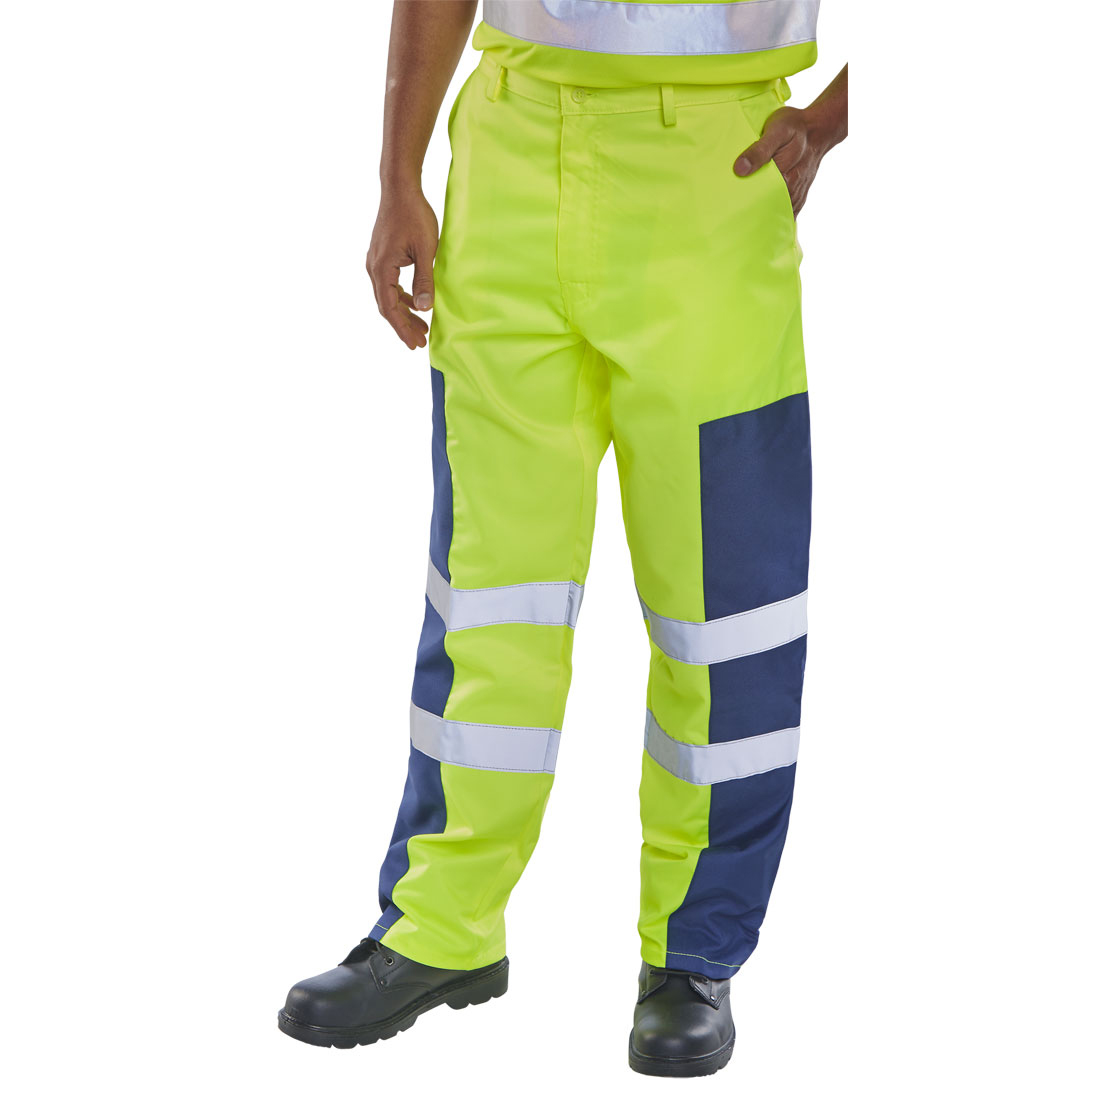 Click Workwear Trousers Hi-Vis Nylon Patch Yellow/Navy 44 Long Ref PCTSYNNP44T Up to 3 Day Leadtime